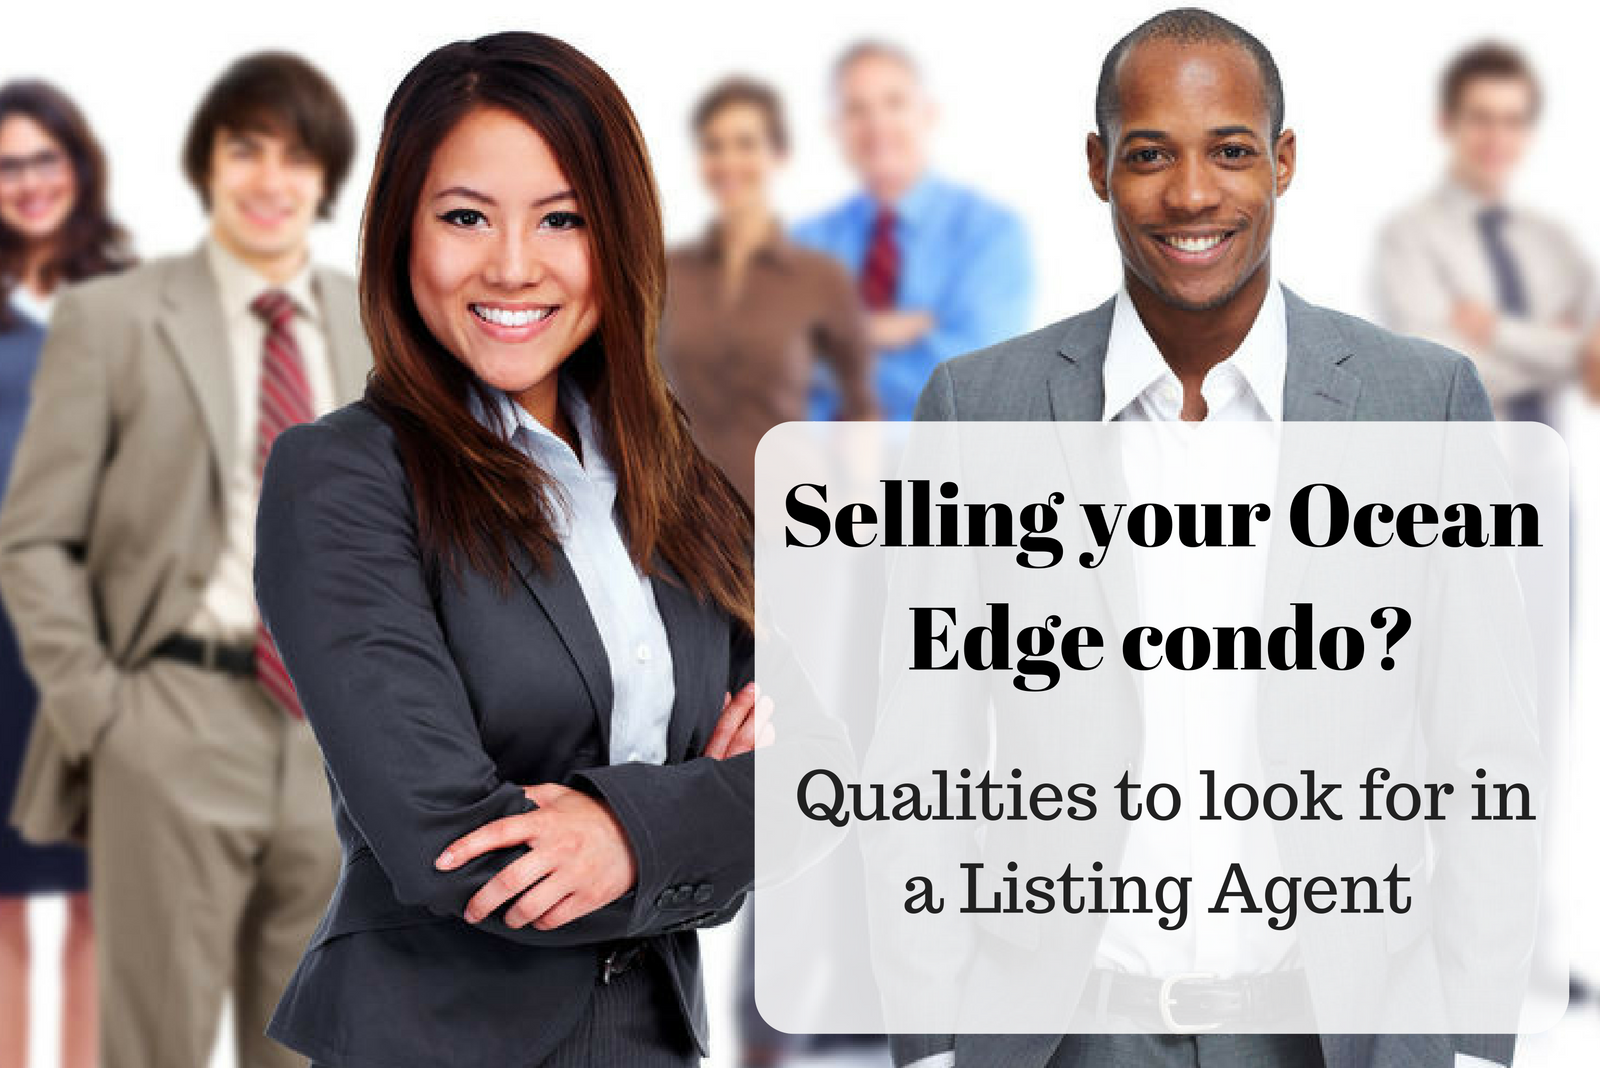 Selling Your Ocean Edge Condo Qualities to look for in a Listing Agent